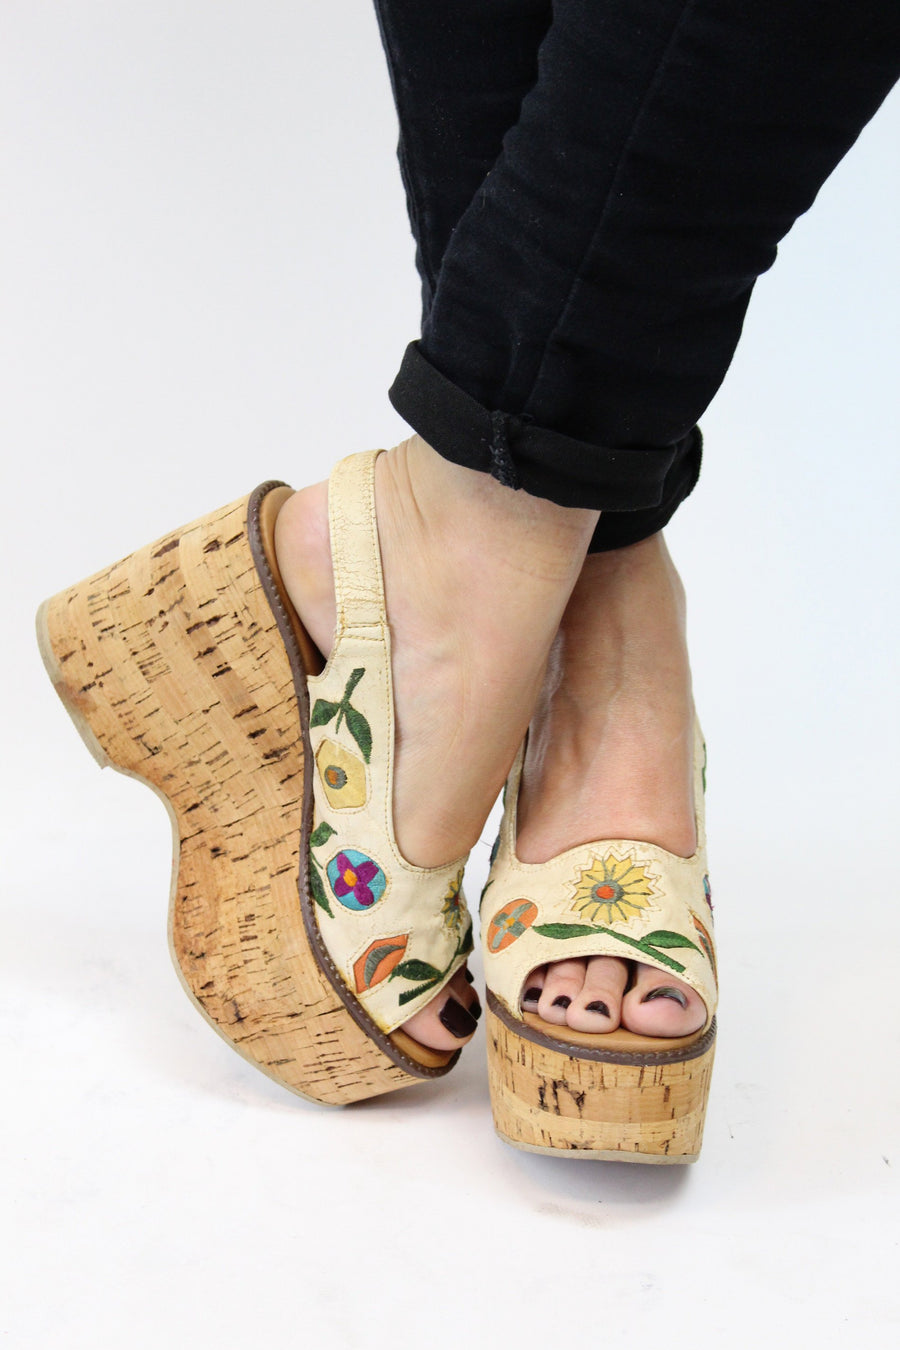 1970s cork platform shoes | deadstock leather floral sandals | size 5 us